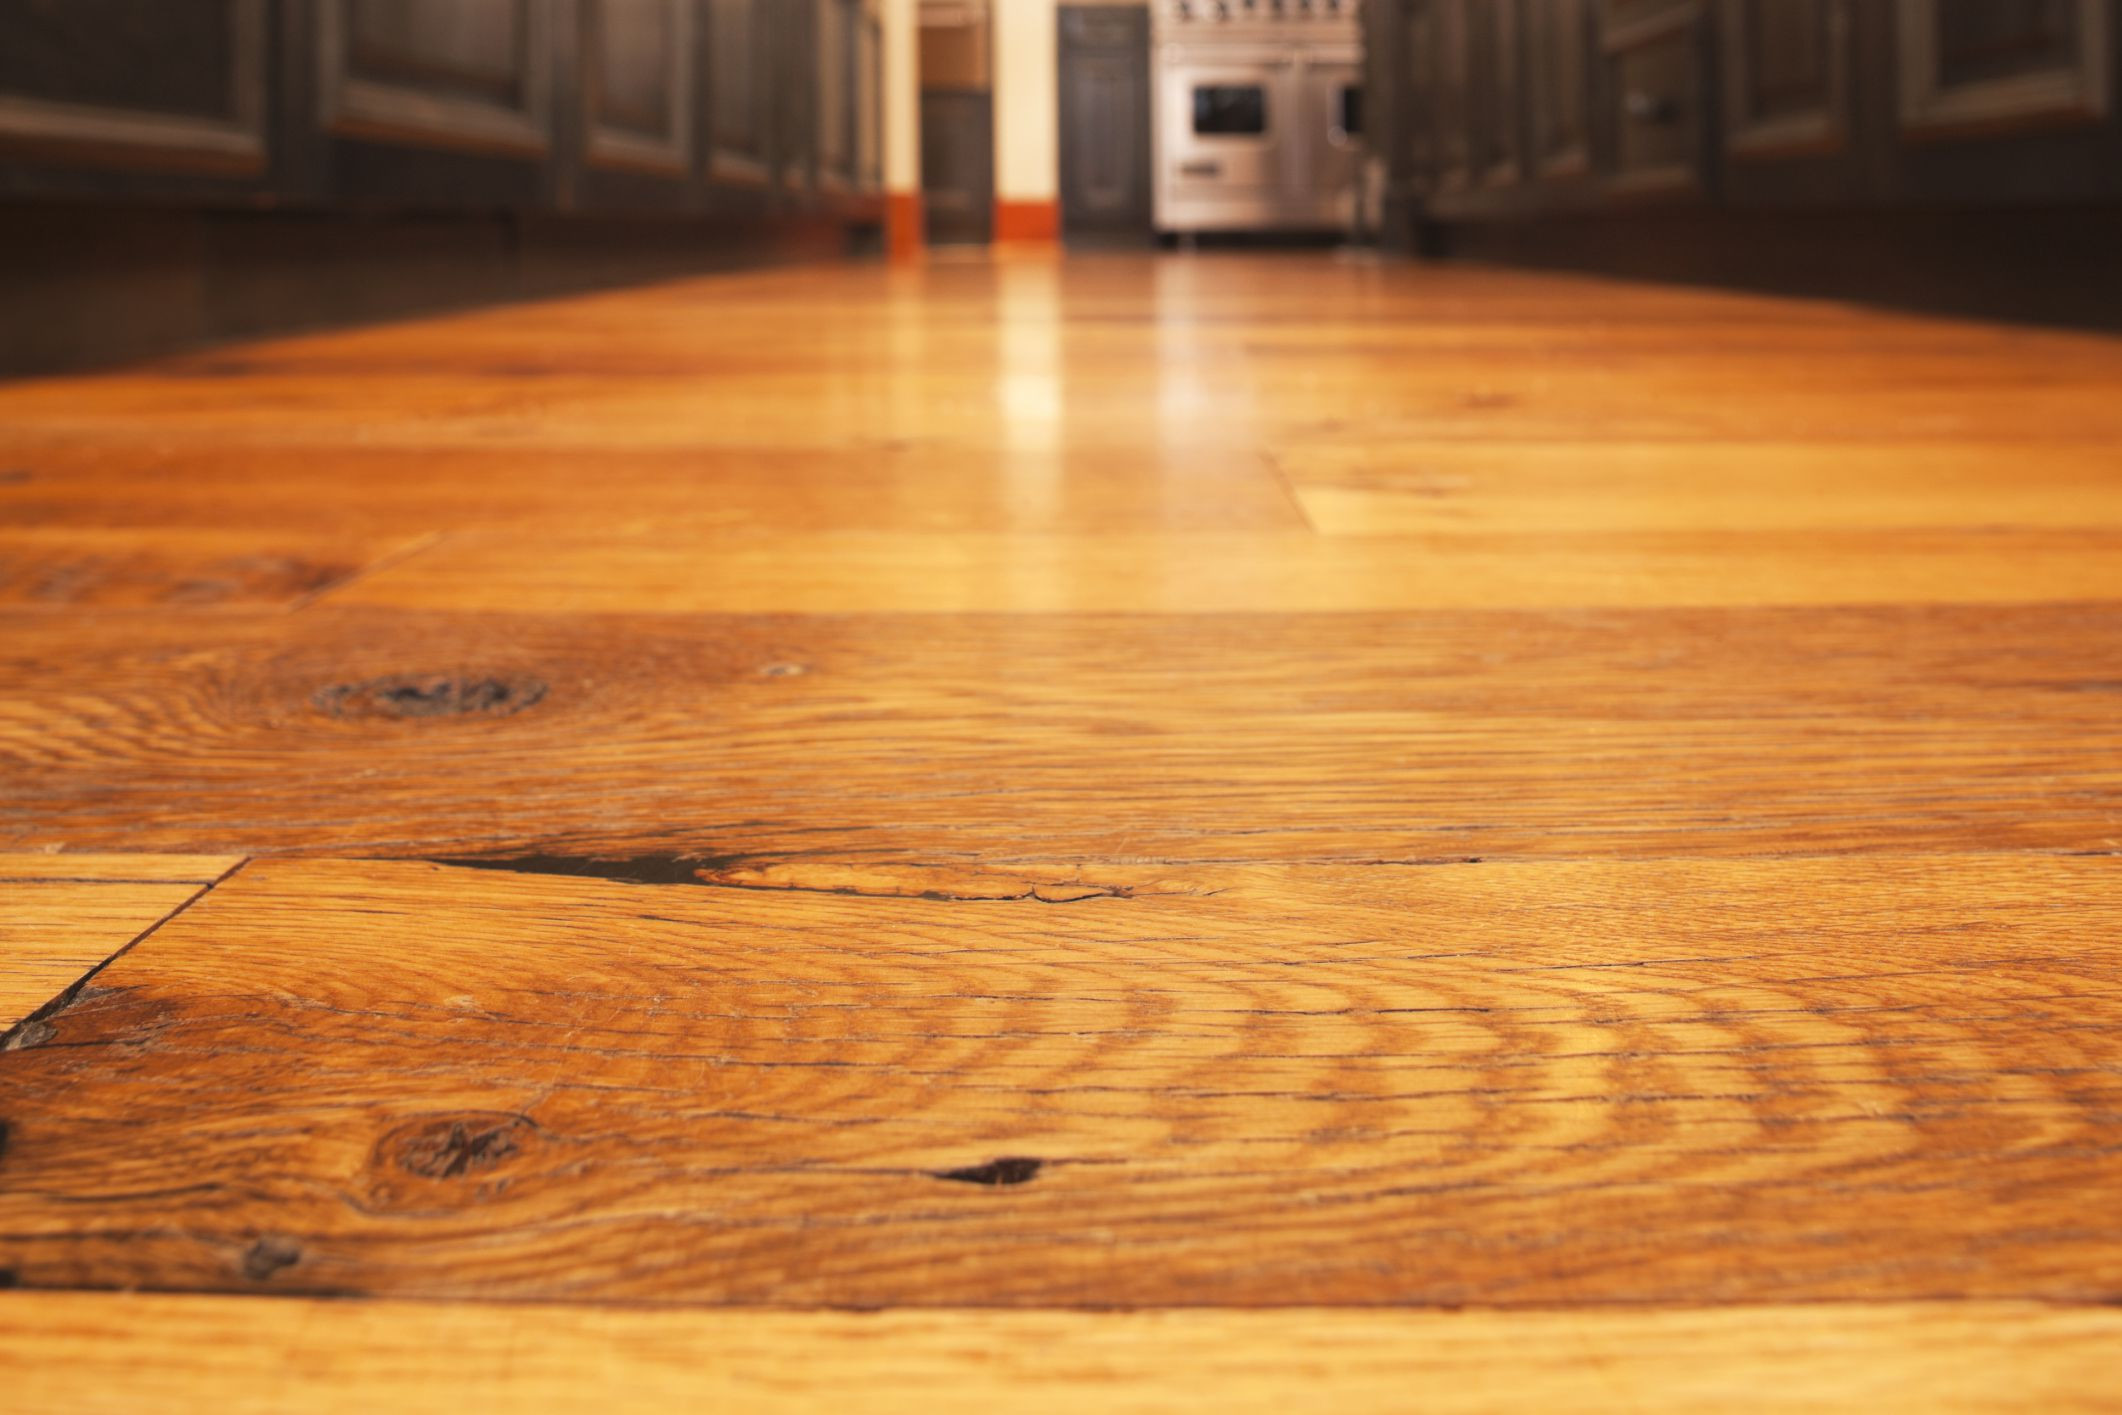 Raw Hardwood Flooring wholesale Of why A Microbevel is On Your Flooring Pertaining to Wood Floor Closeup Microbevel 56a4a13f5f9b58b7d0d7e5f4